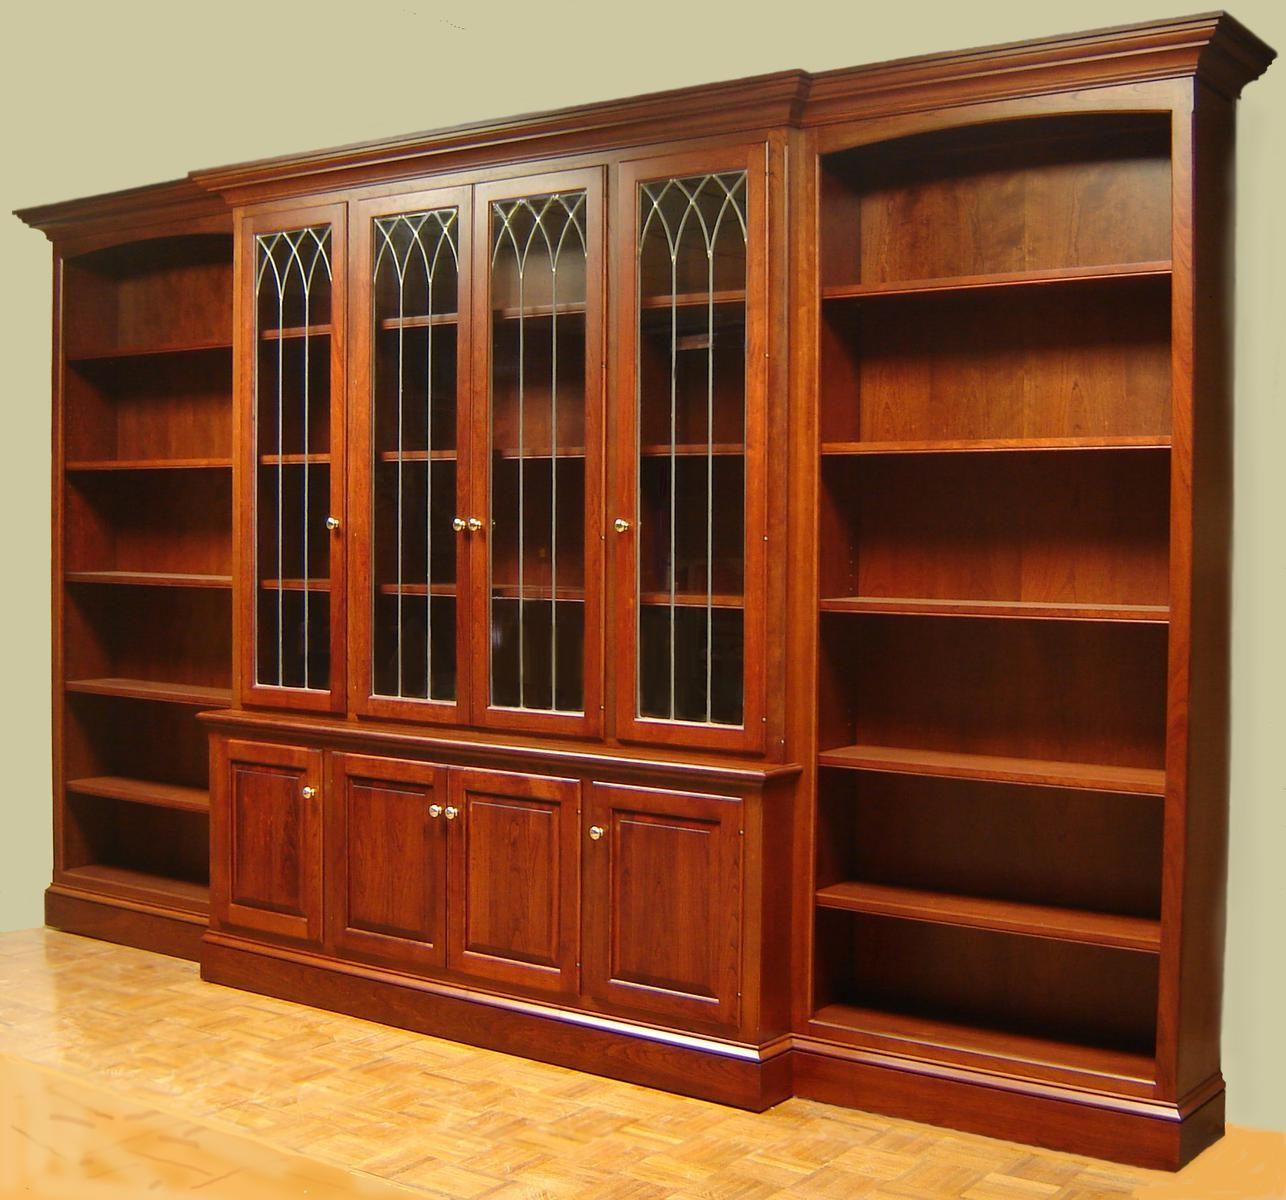 Image of: Large Bookcase With Glass Doors